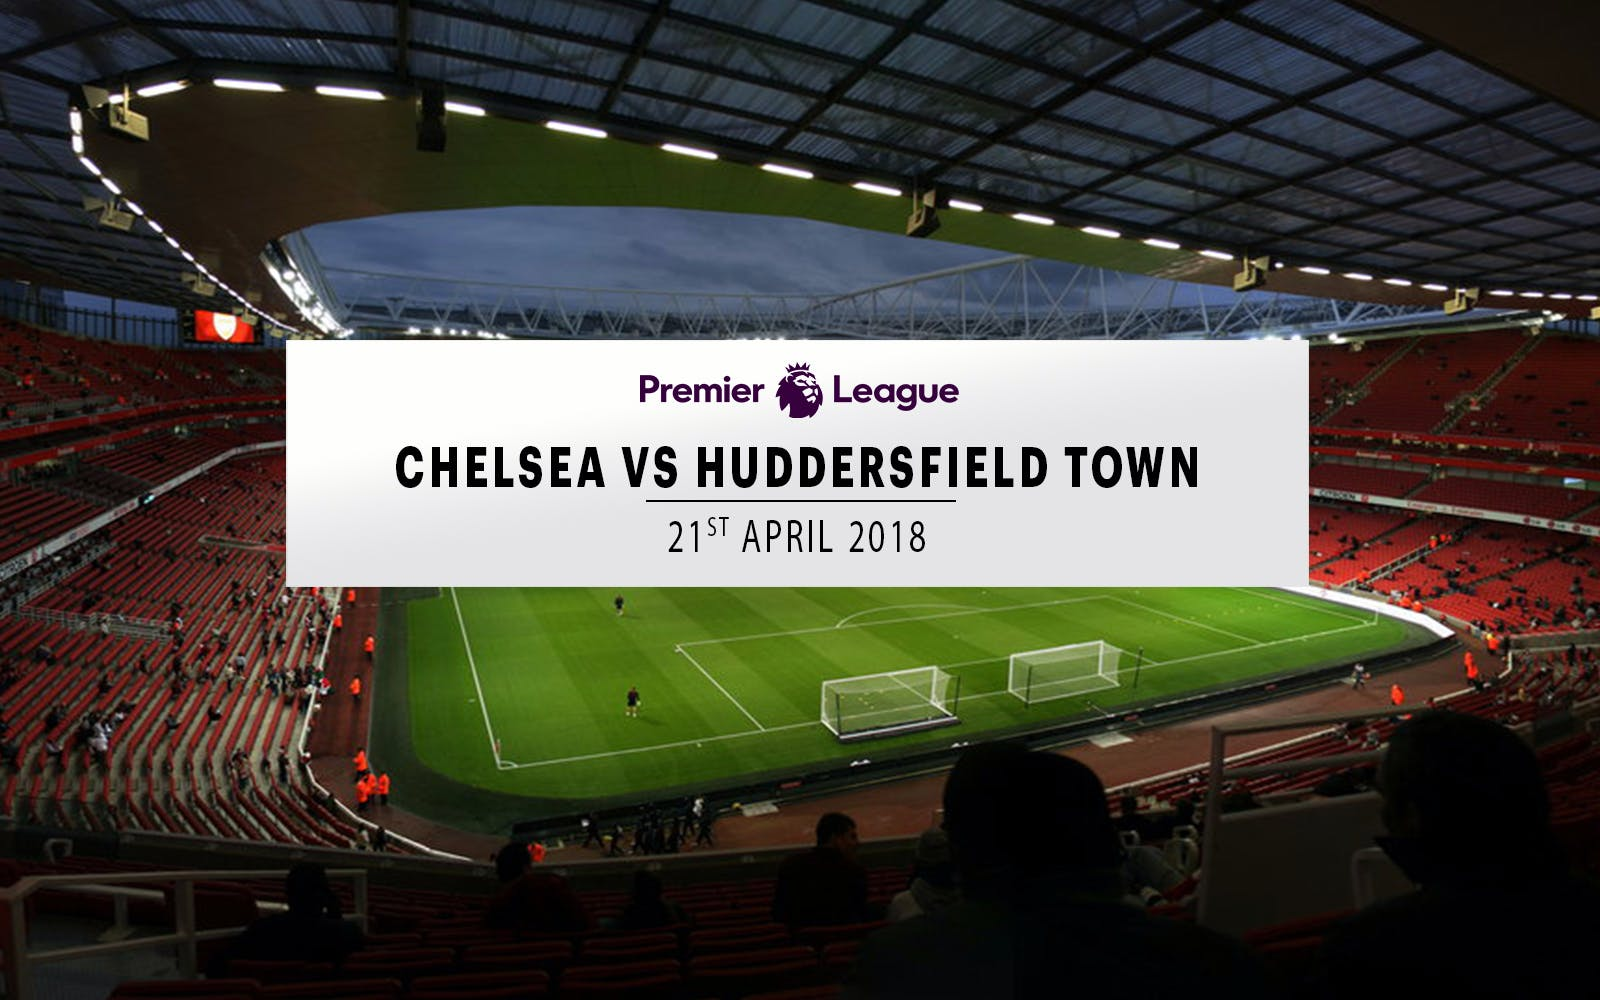 chelsea vs huddersfield town - 21st april 2018-1